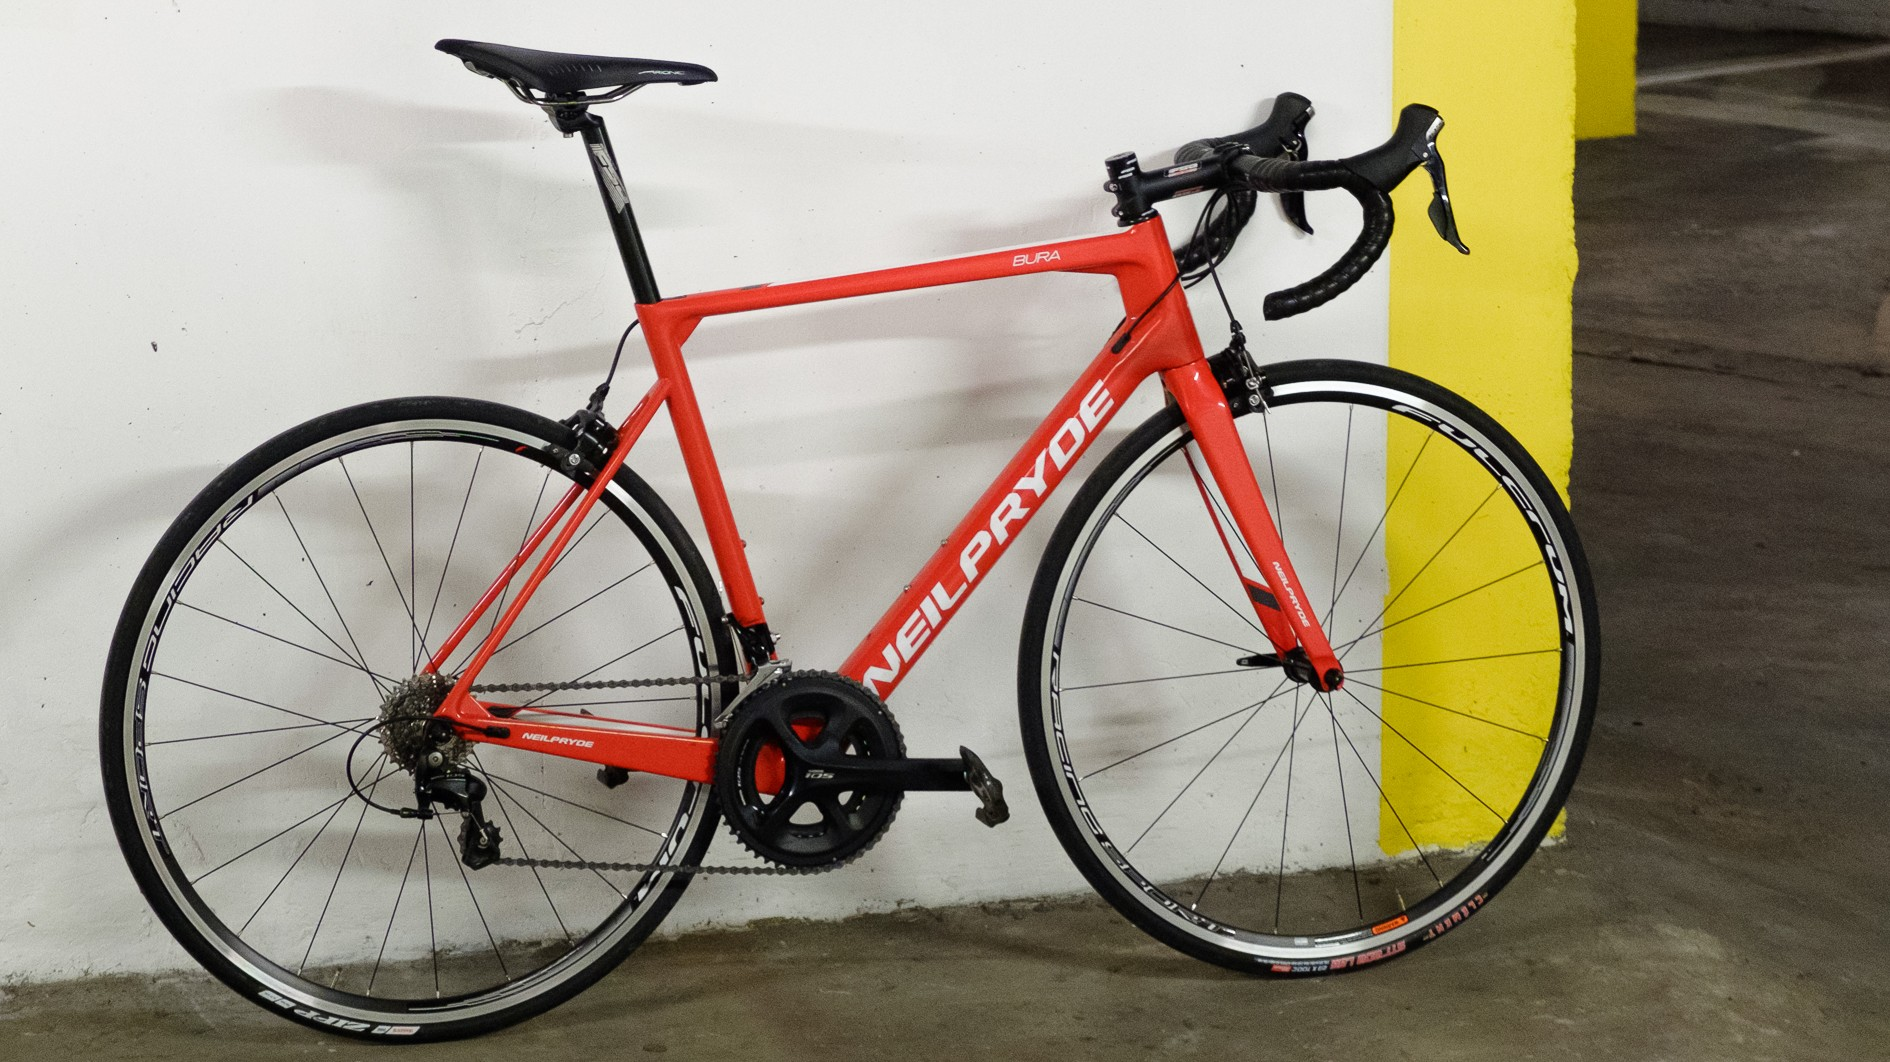 My particular bike is the slightly heavier, non-SL version